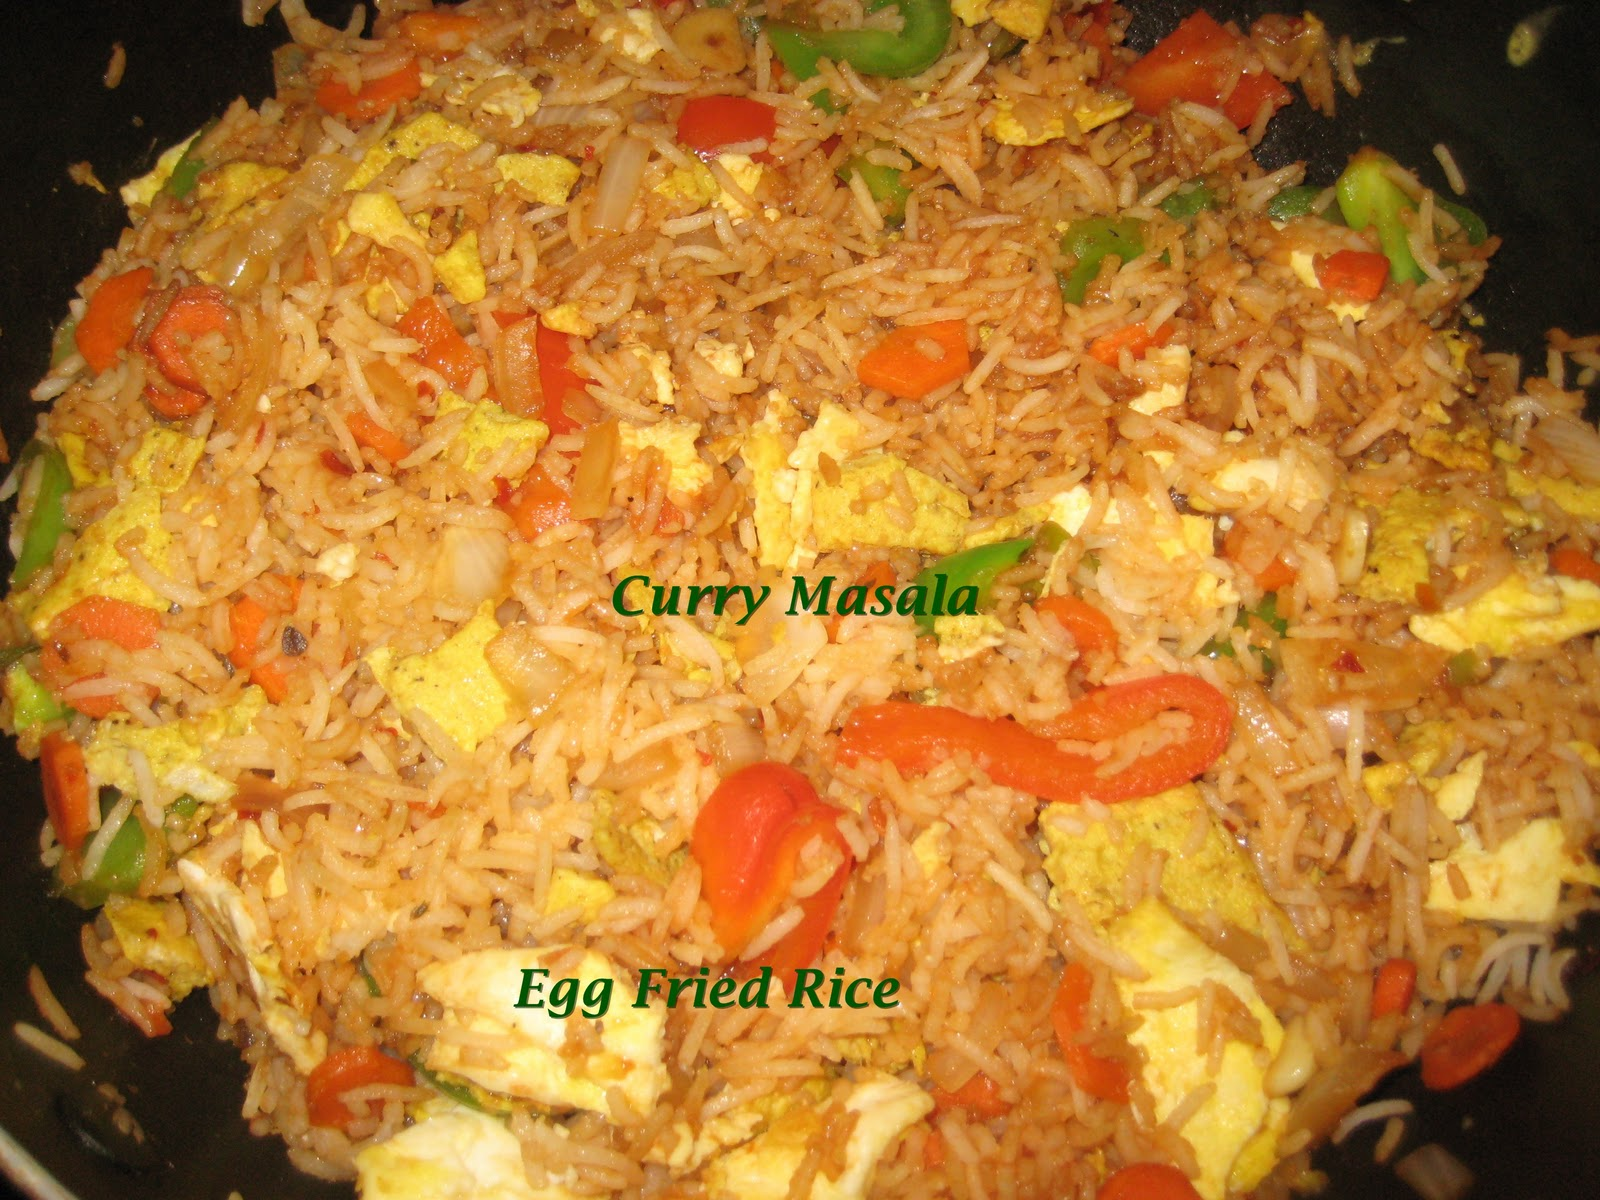 Curry Masala: Easy Spicy Egg Fried Rice